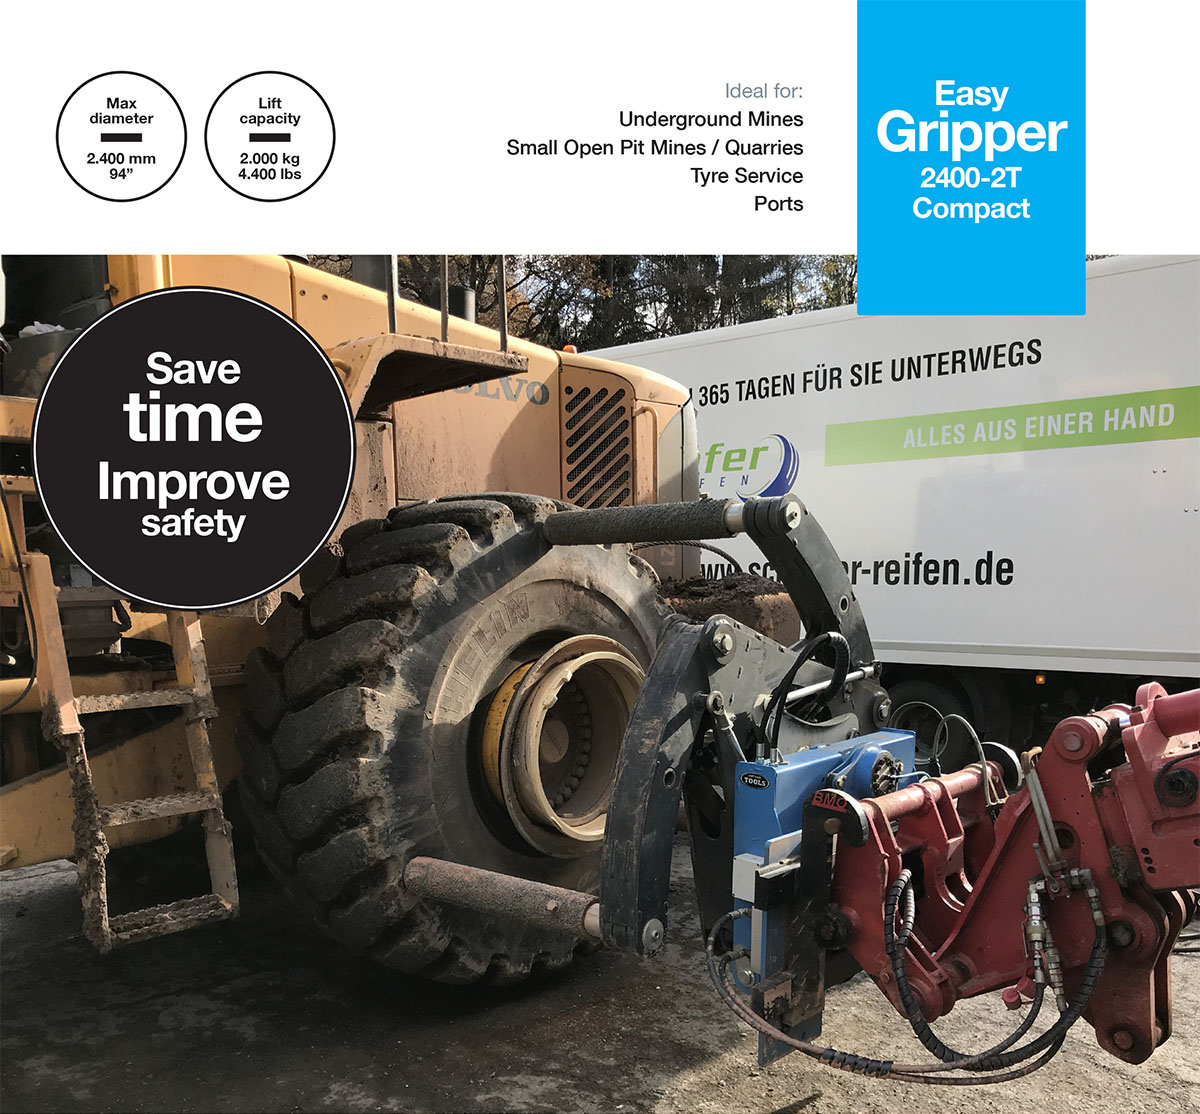 Easy Gripper2400-2T Compact - Professional tools for handling of OTR/EM tyres up to 35